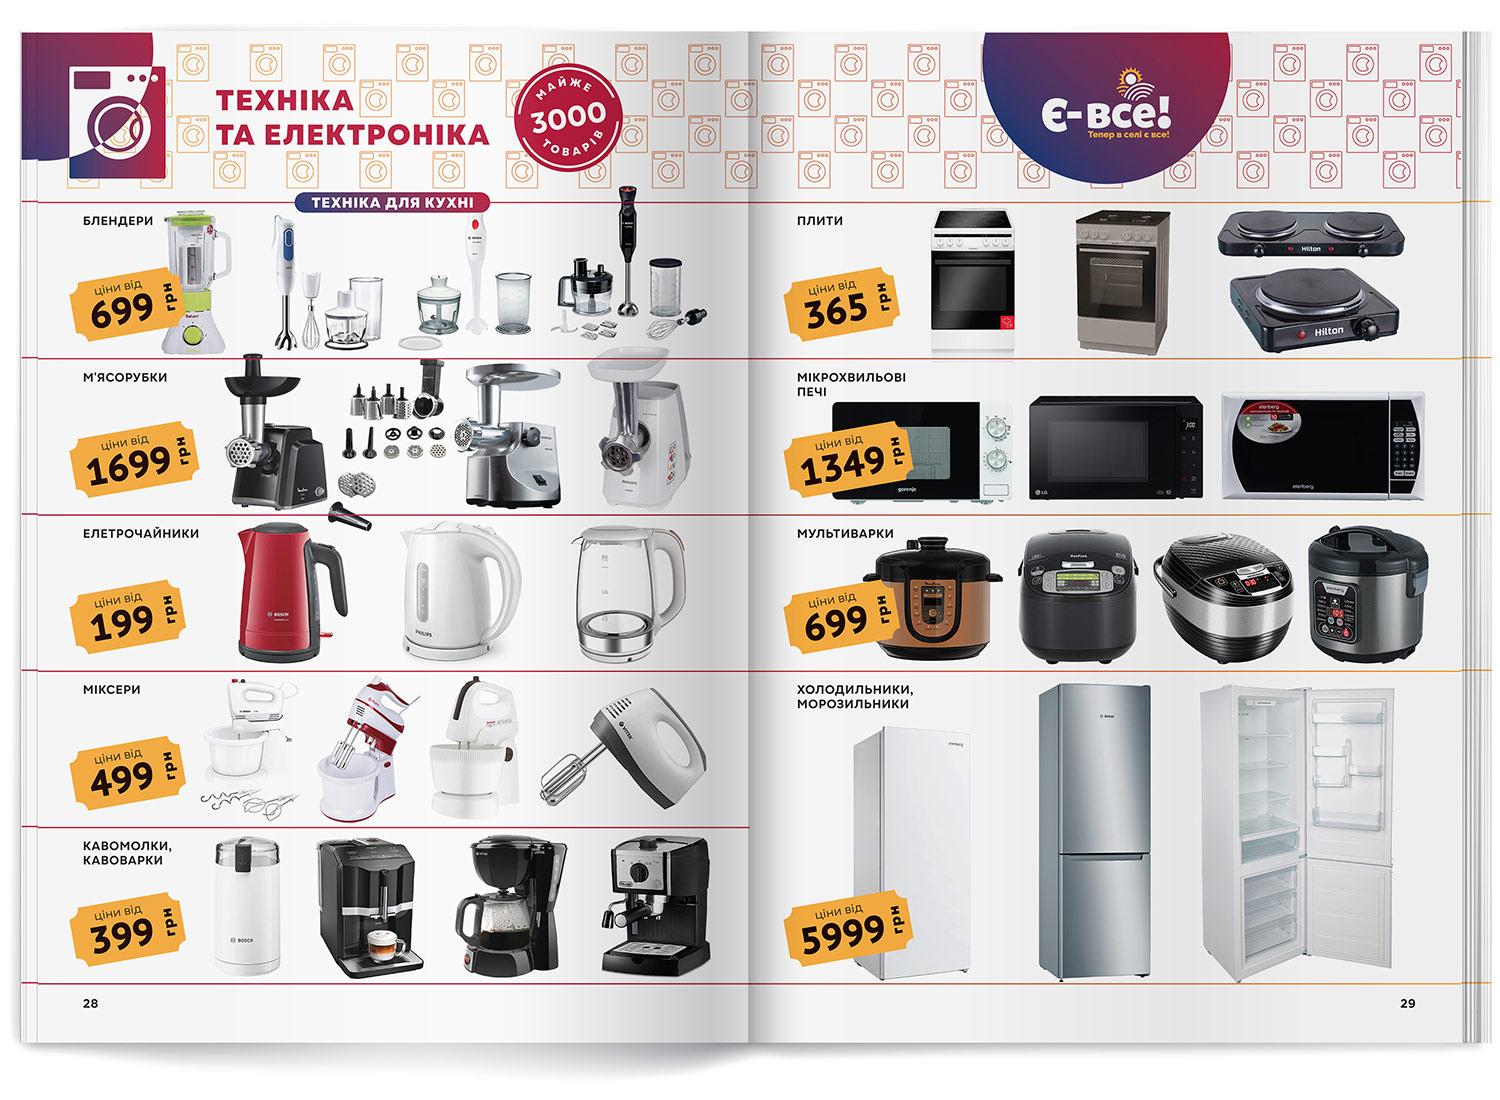 Product catalog, layout template. Household appliances and electronics spread of the catalog. Ye-Vse! (There is everything!)